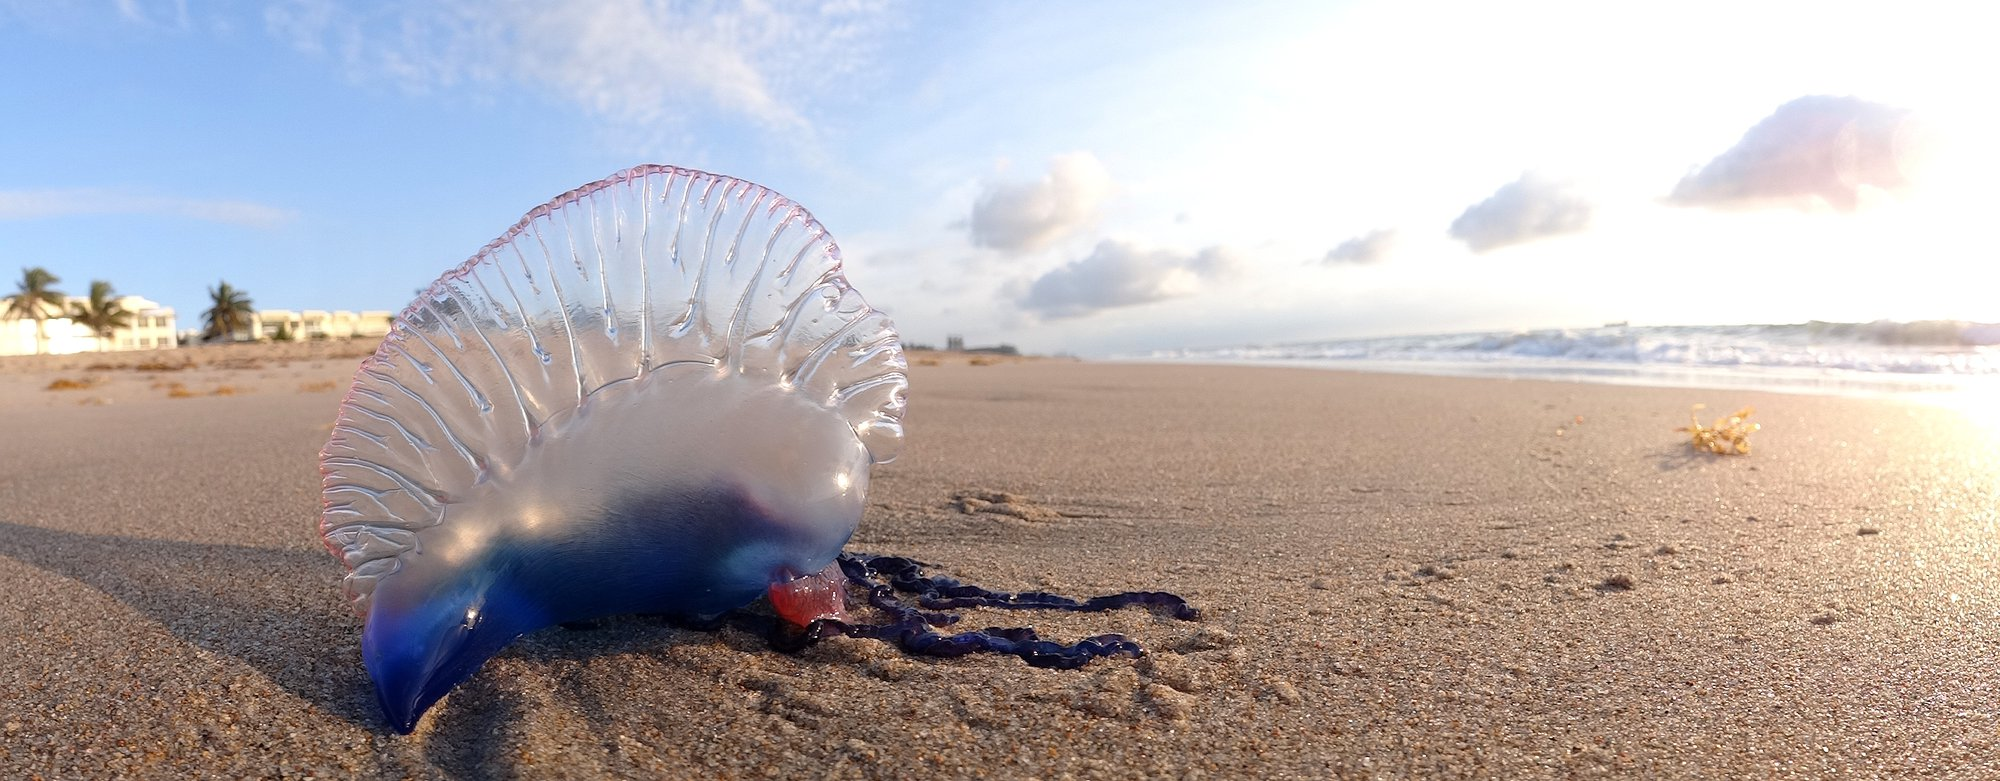 Portuguese_Man_o'_War_at_Palm_Beach_FL_by_Volkan_Yuksel_DSC05878.jpg